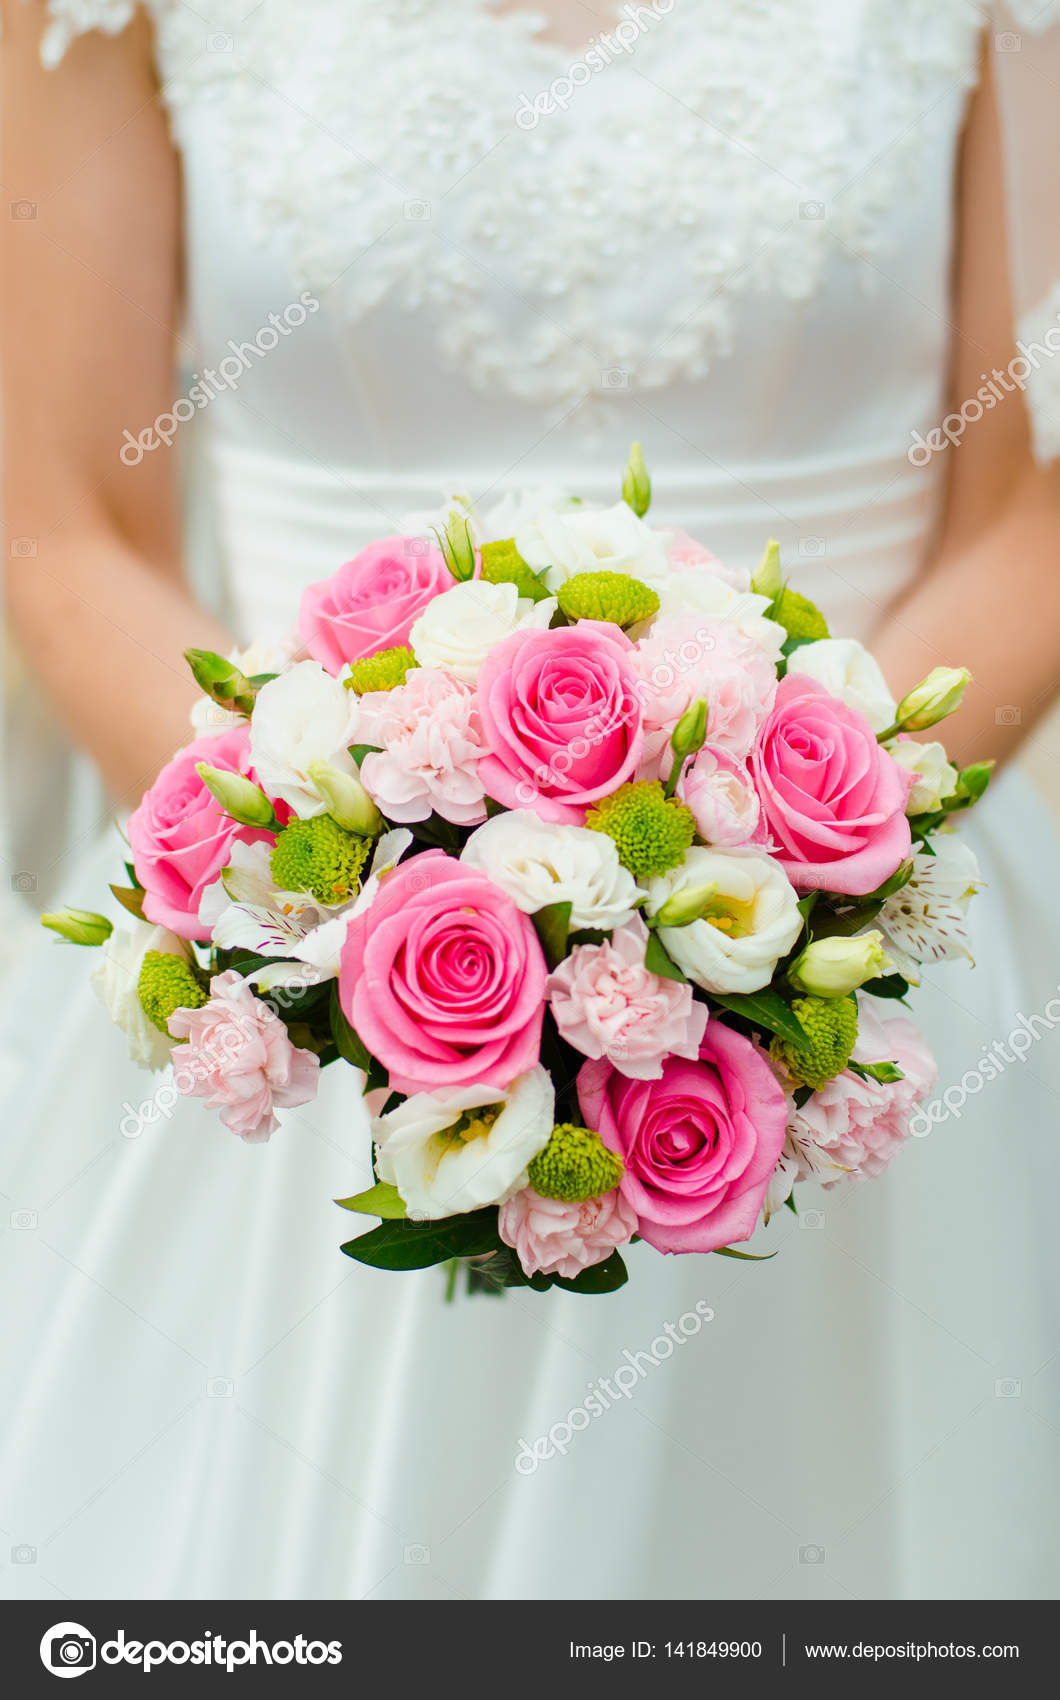 Hochzeitsstrauß Rosen Rosa Wedding Bouquet With Pink Roses Stock Photo O Yaremchuk